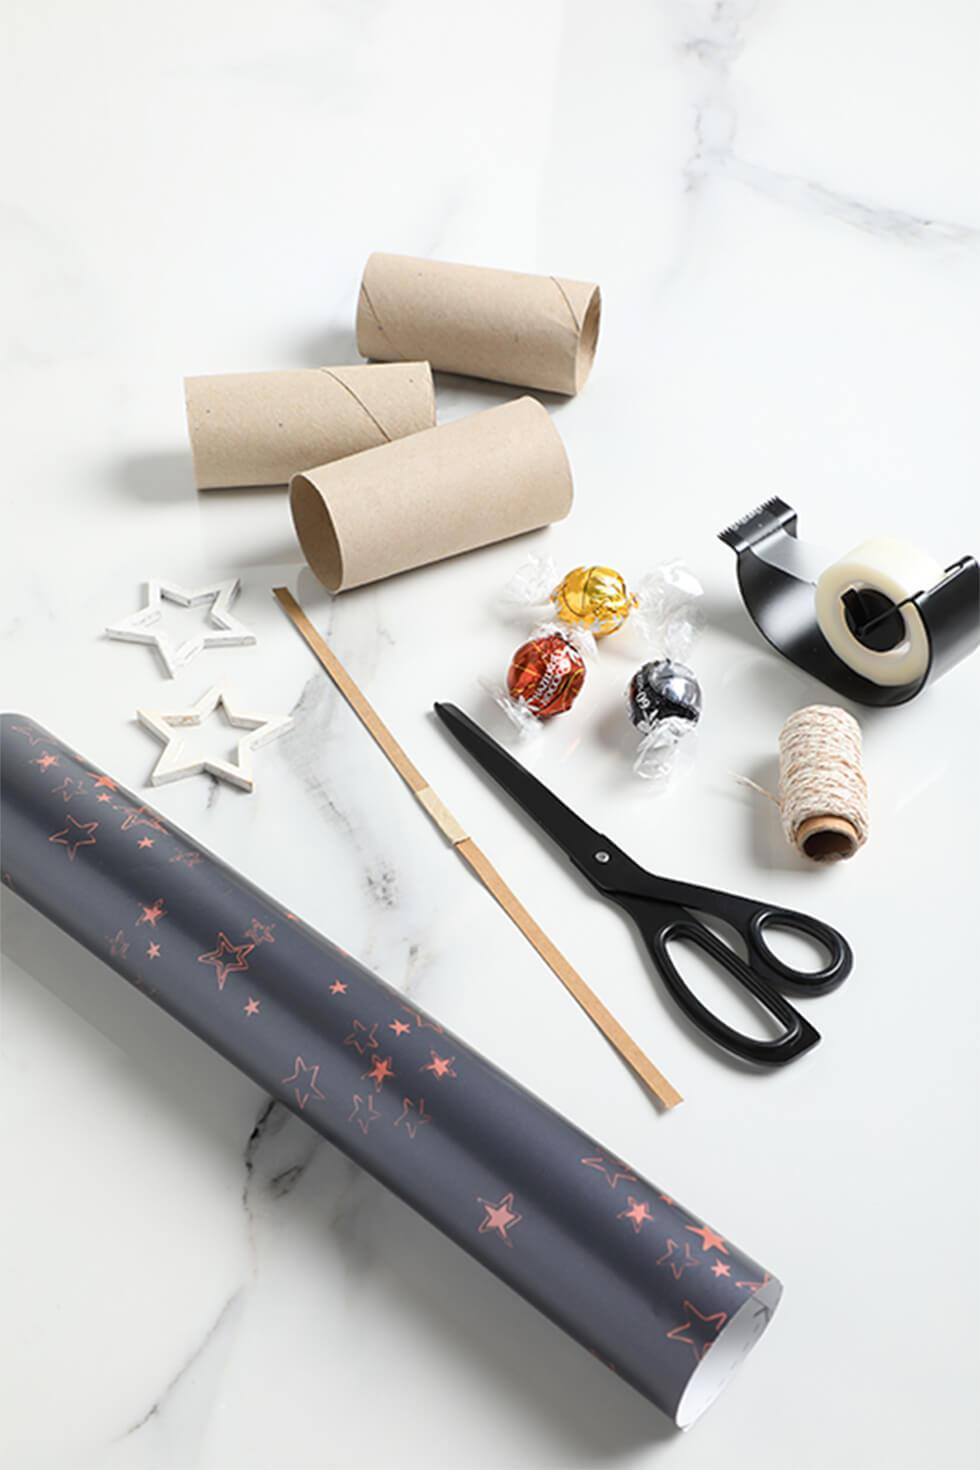 Items you'll need to make a christmas cracker